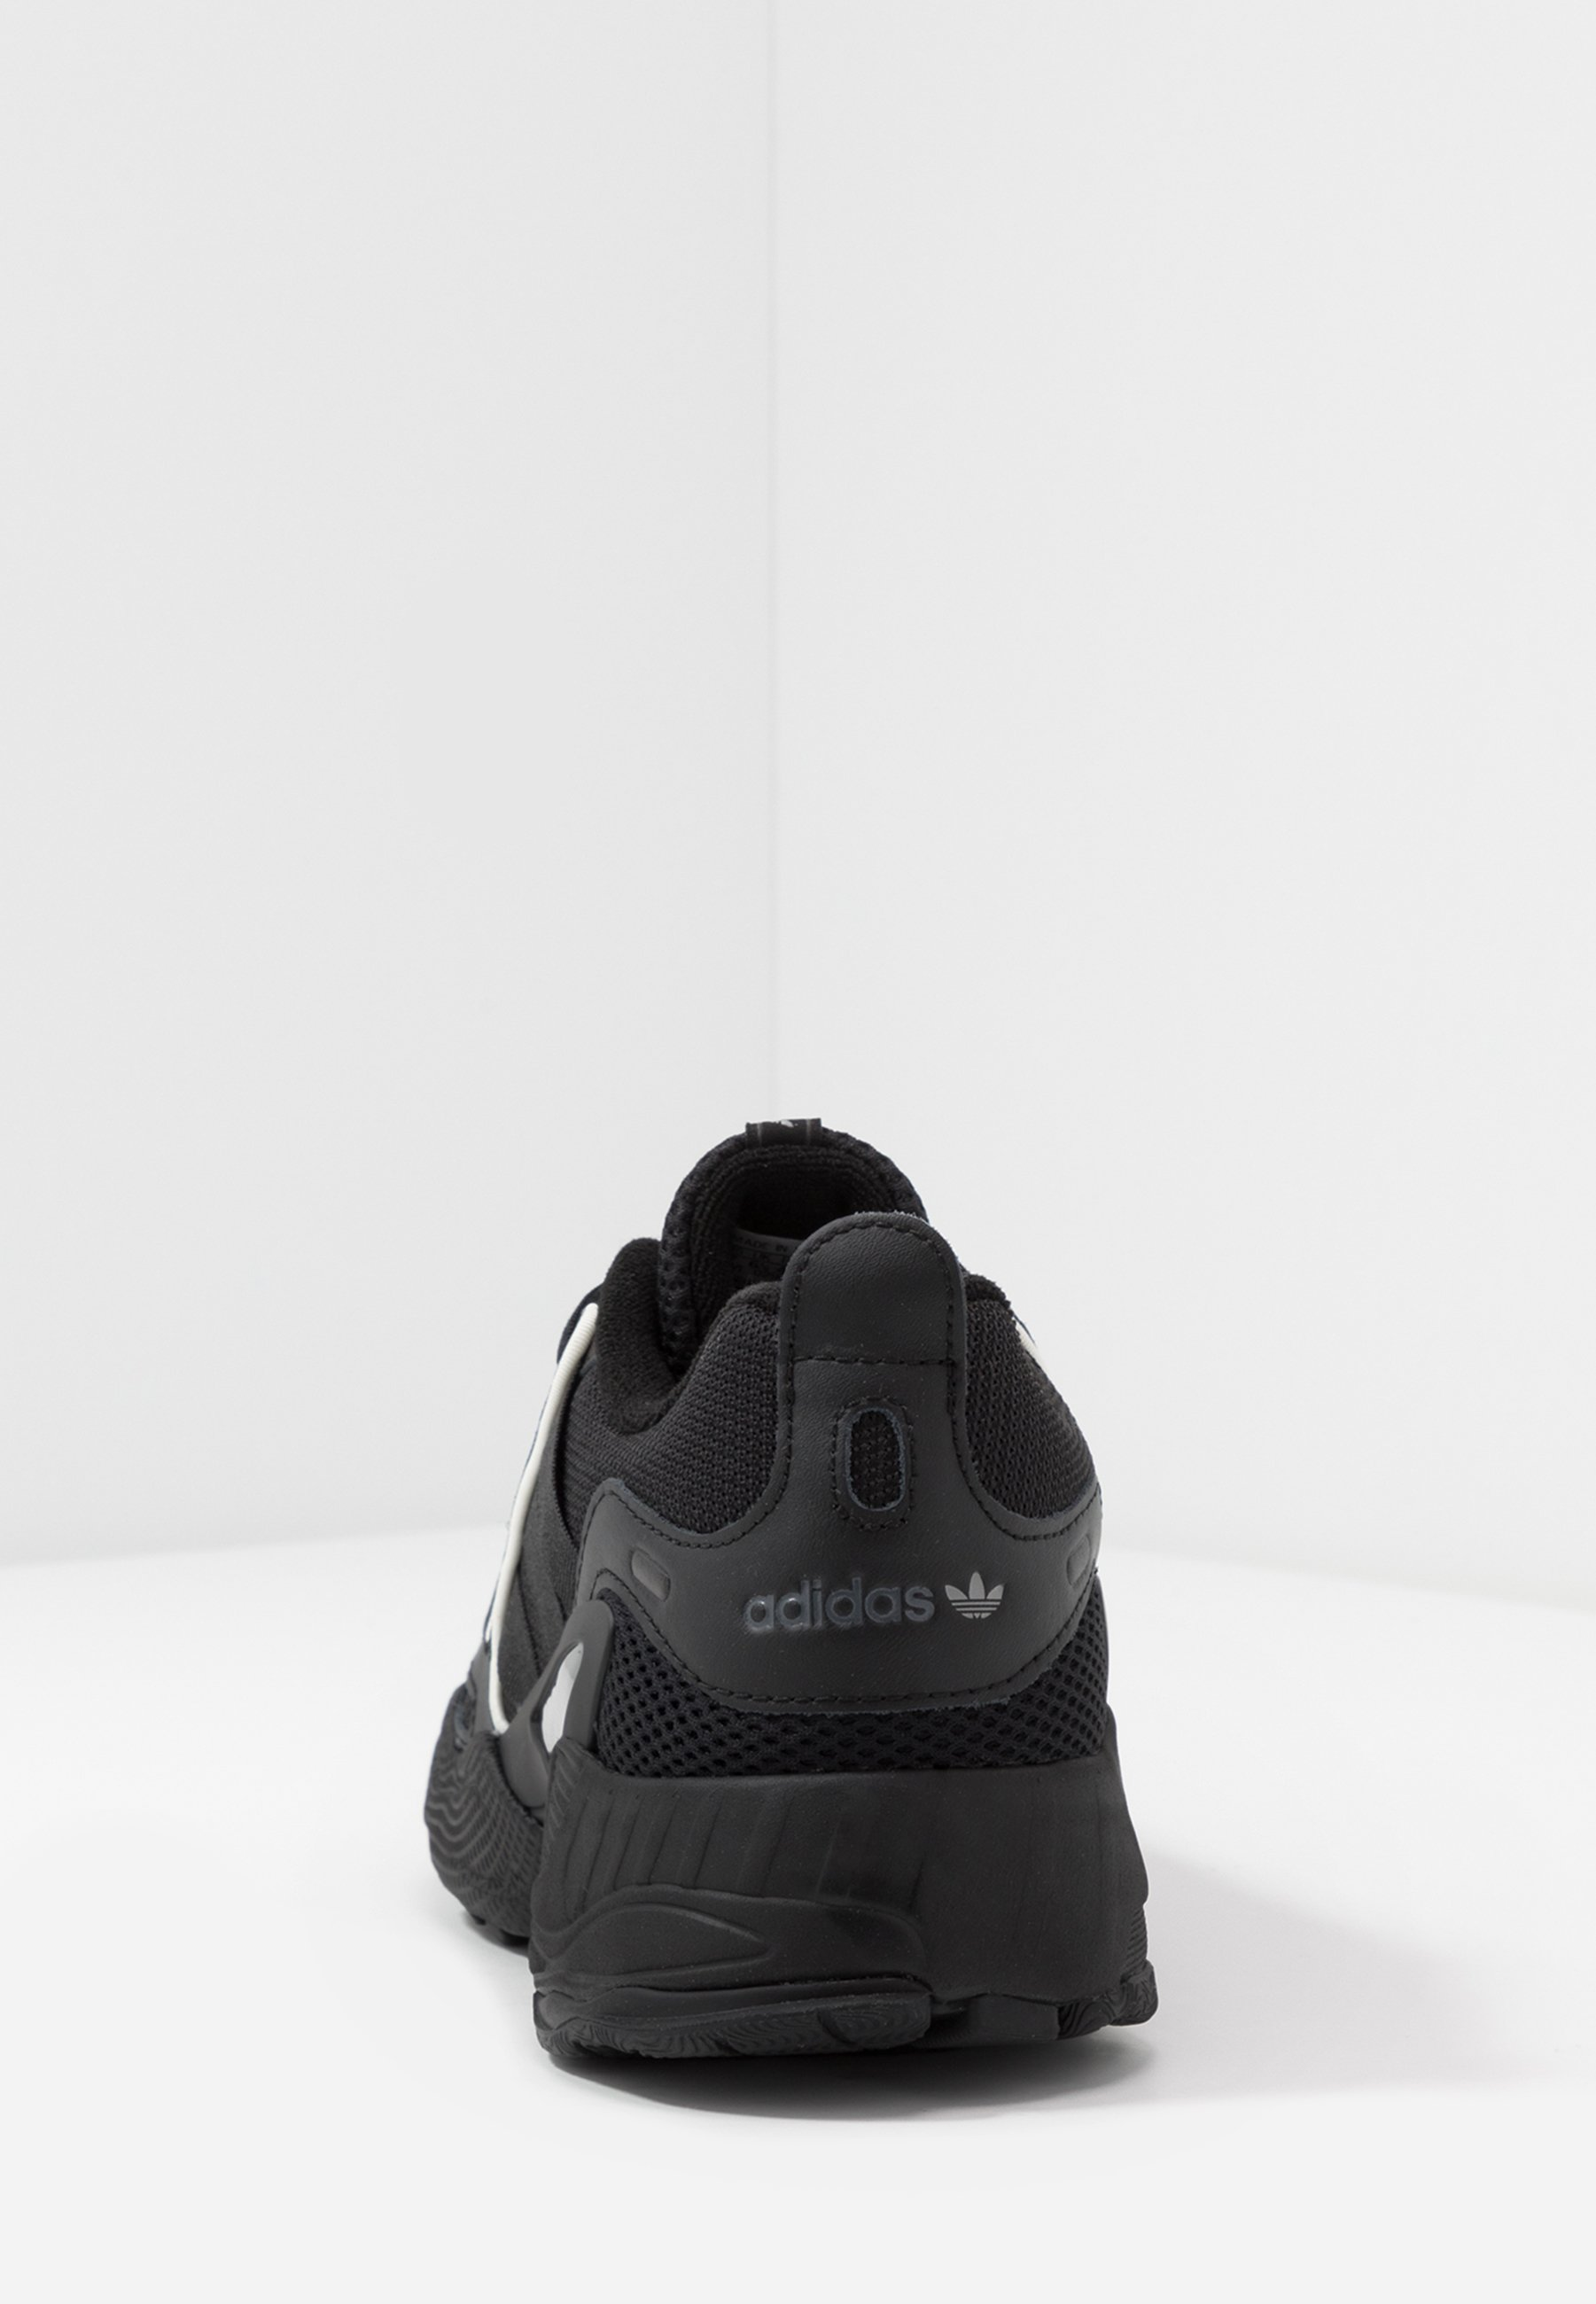 Adidas Originals Eqt Gazelle - Sneakers Core Black/crystal White